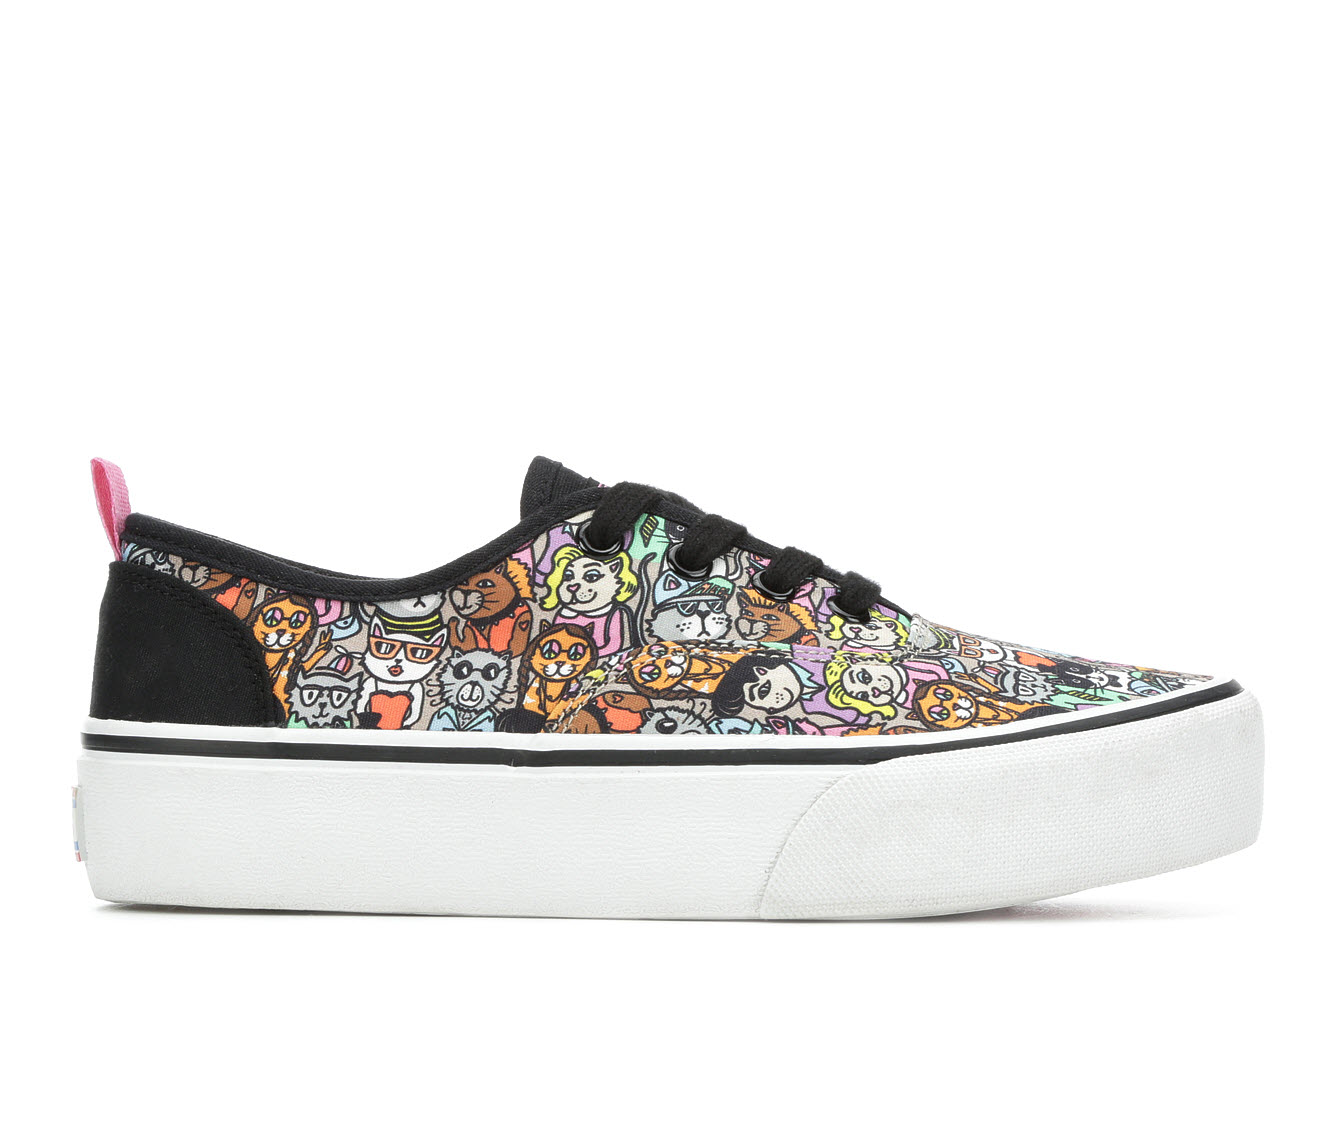 BOBS Marley Meow Ages Women's Shoe (Black Canvas)